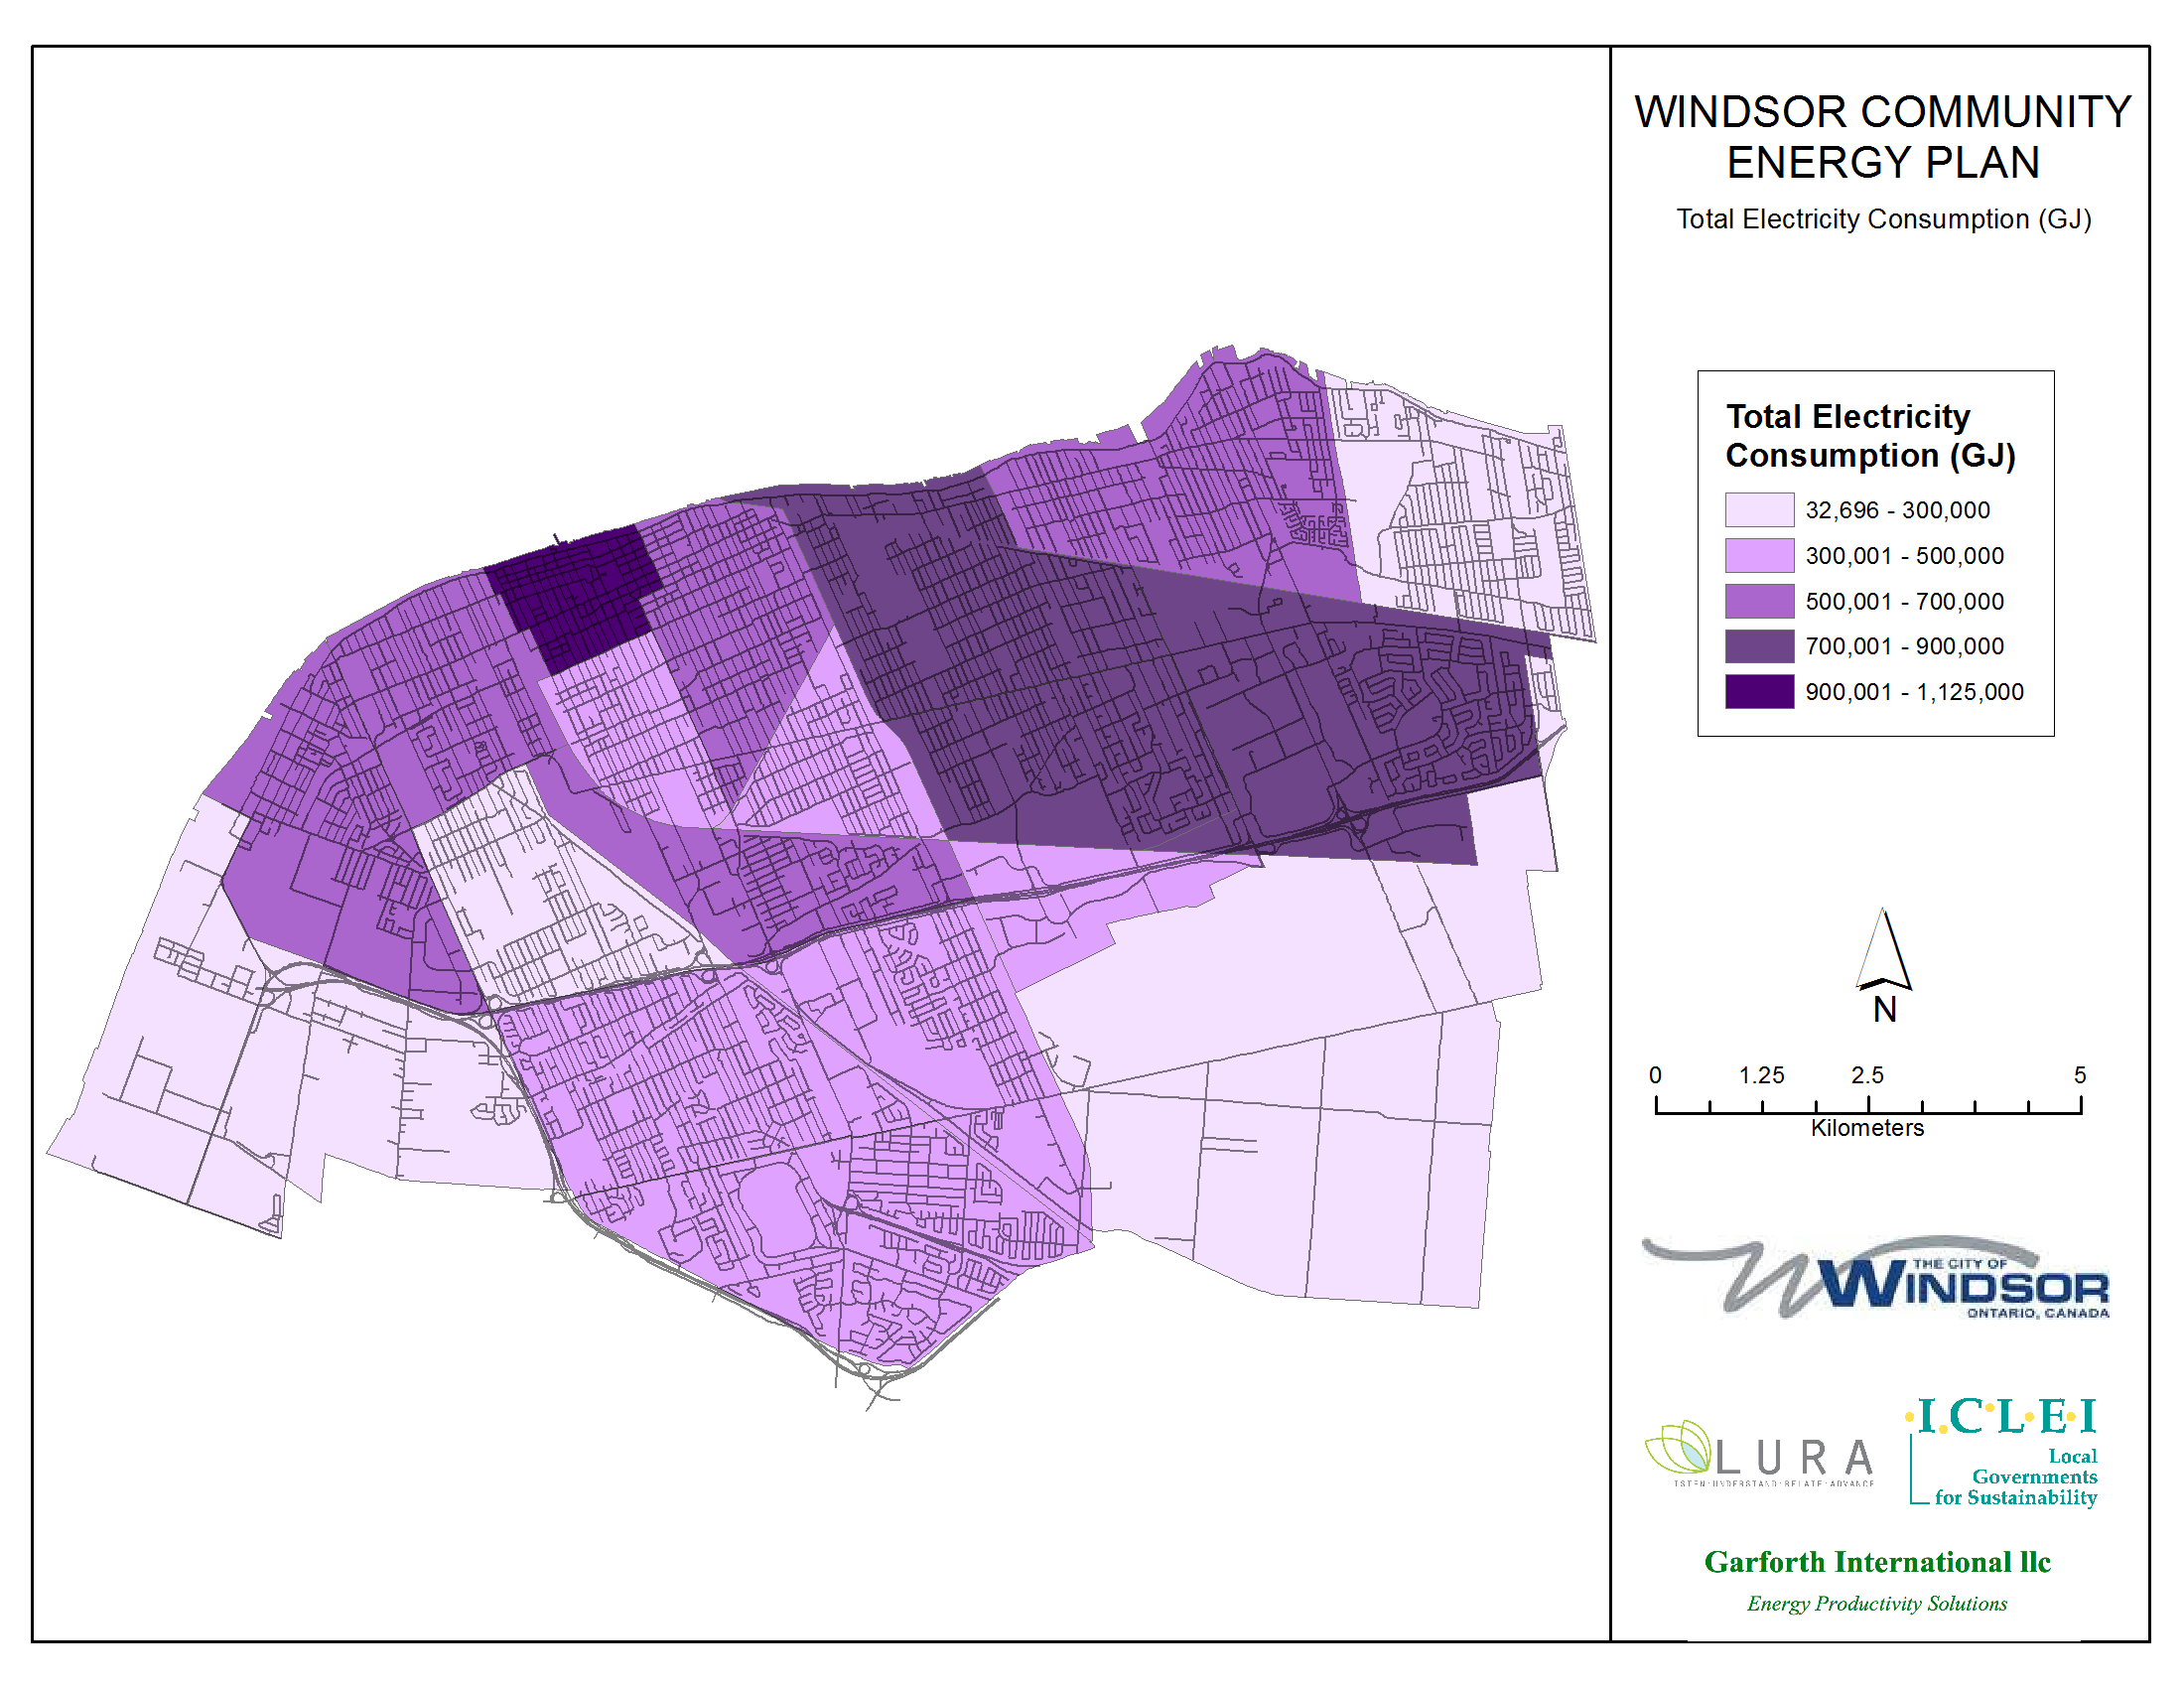 Thumbnail map of total electricity consumption within the City of Windsor